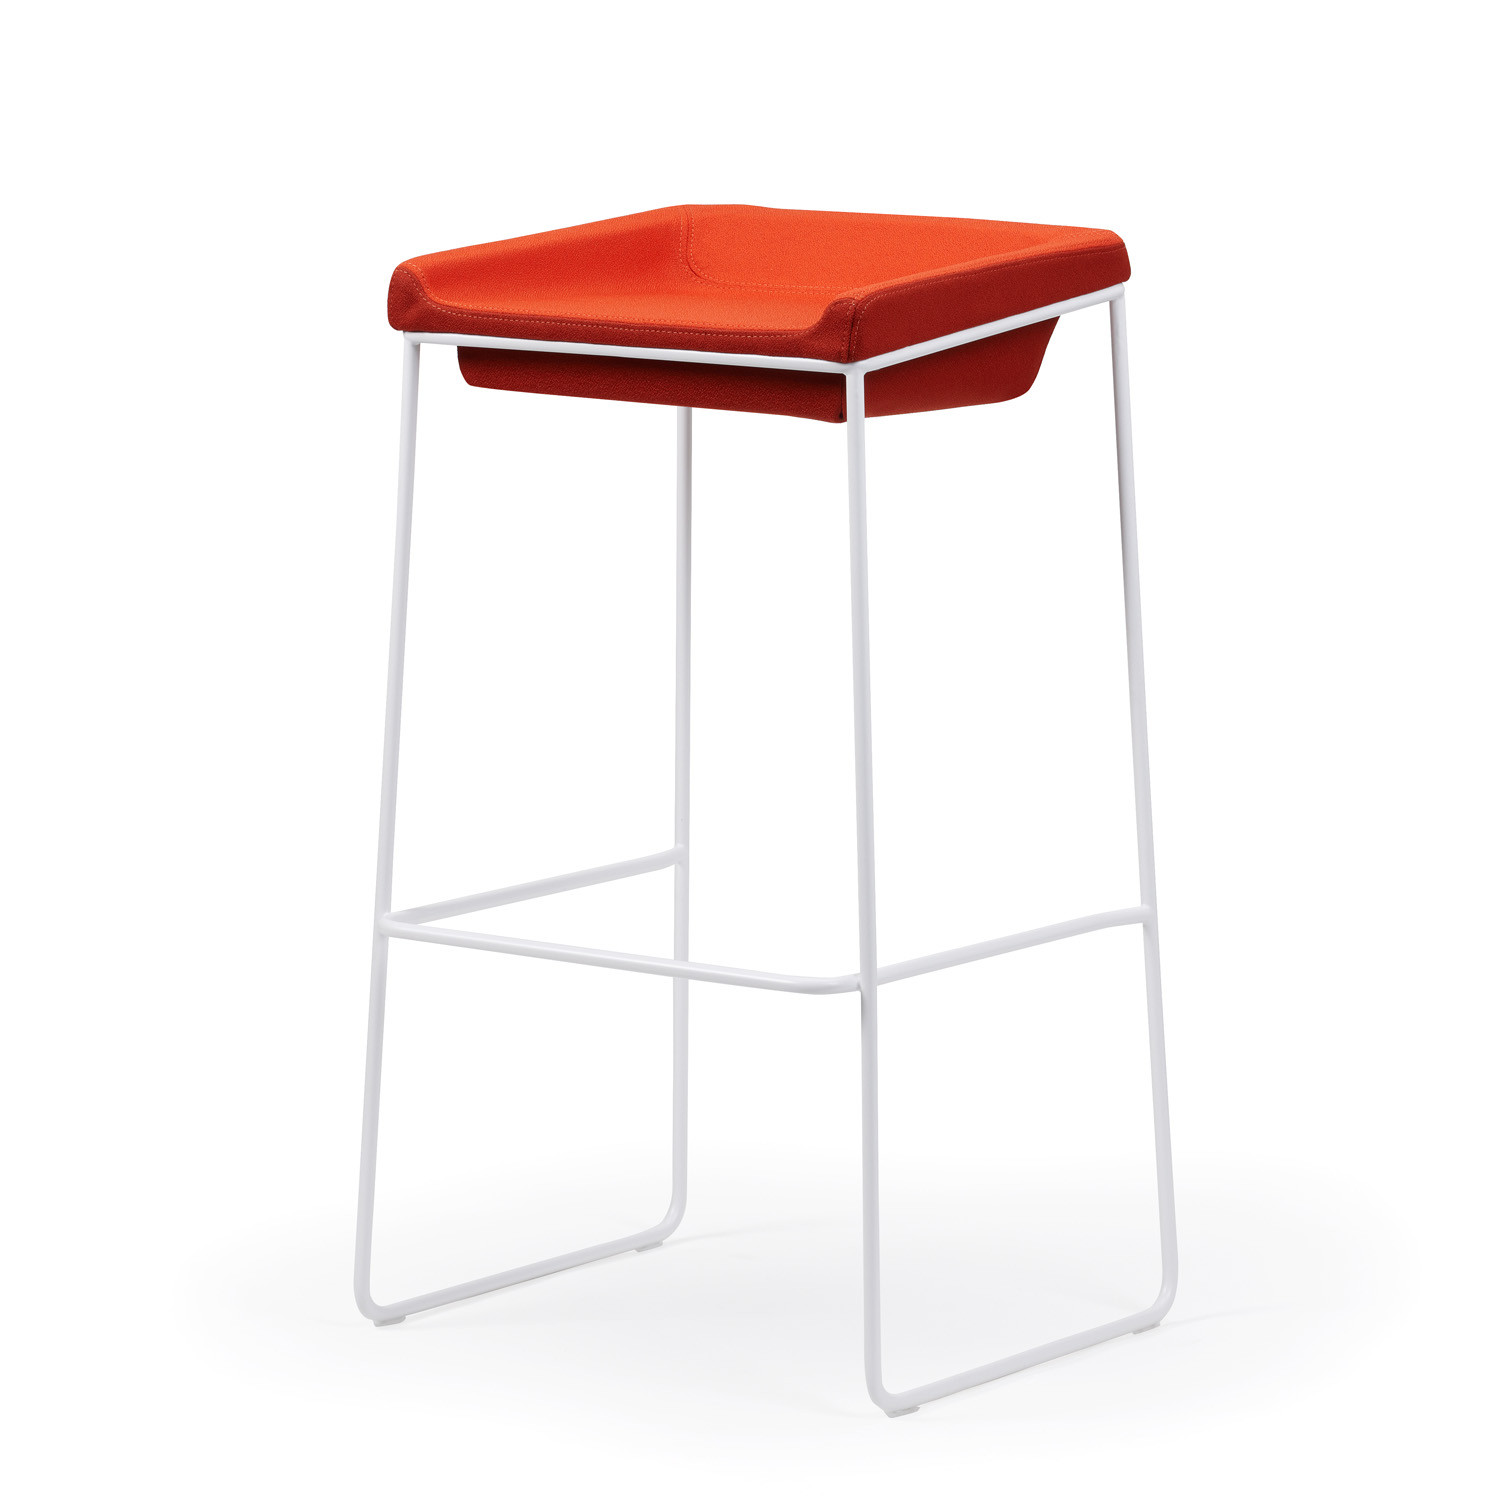 Tonic Bar Stools from Apres